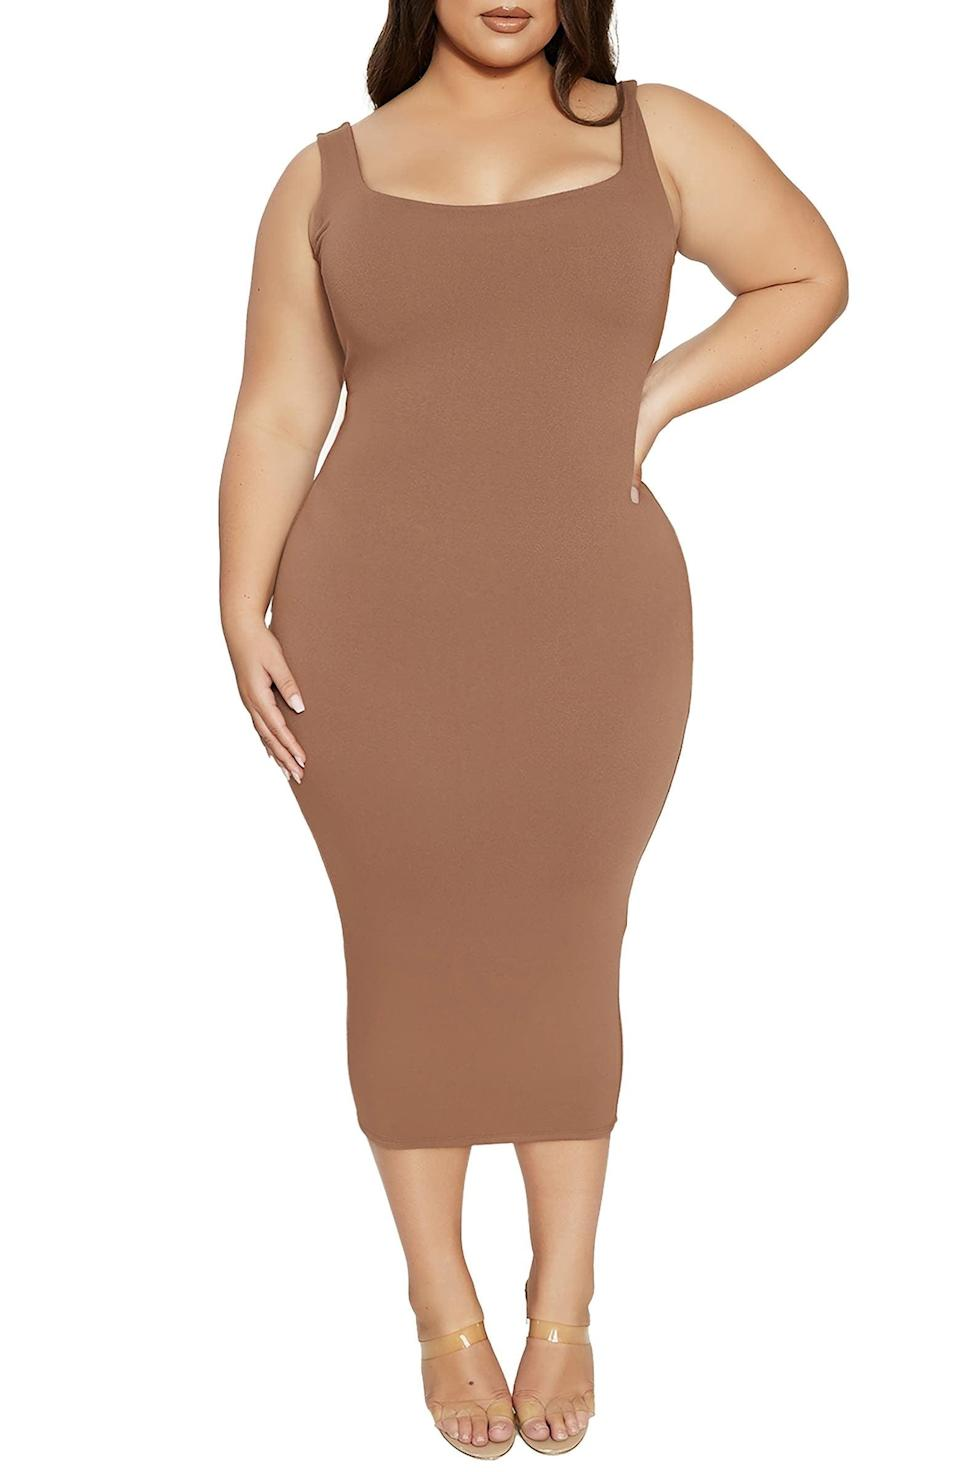 <p>Show off your curves with pride in this <span>Naked Wardrobe Hourglass Midi Dress</span> ($64). It's designed to hug your body in a flattering and elevated way.</p>